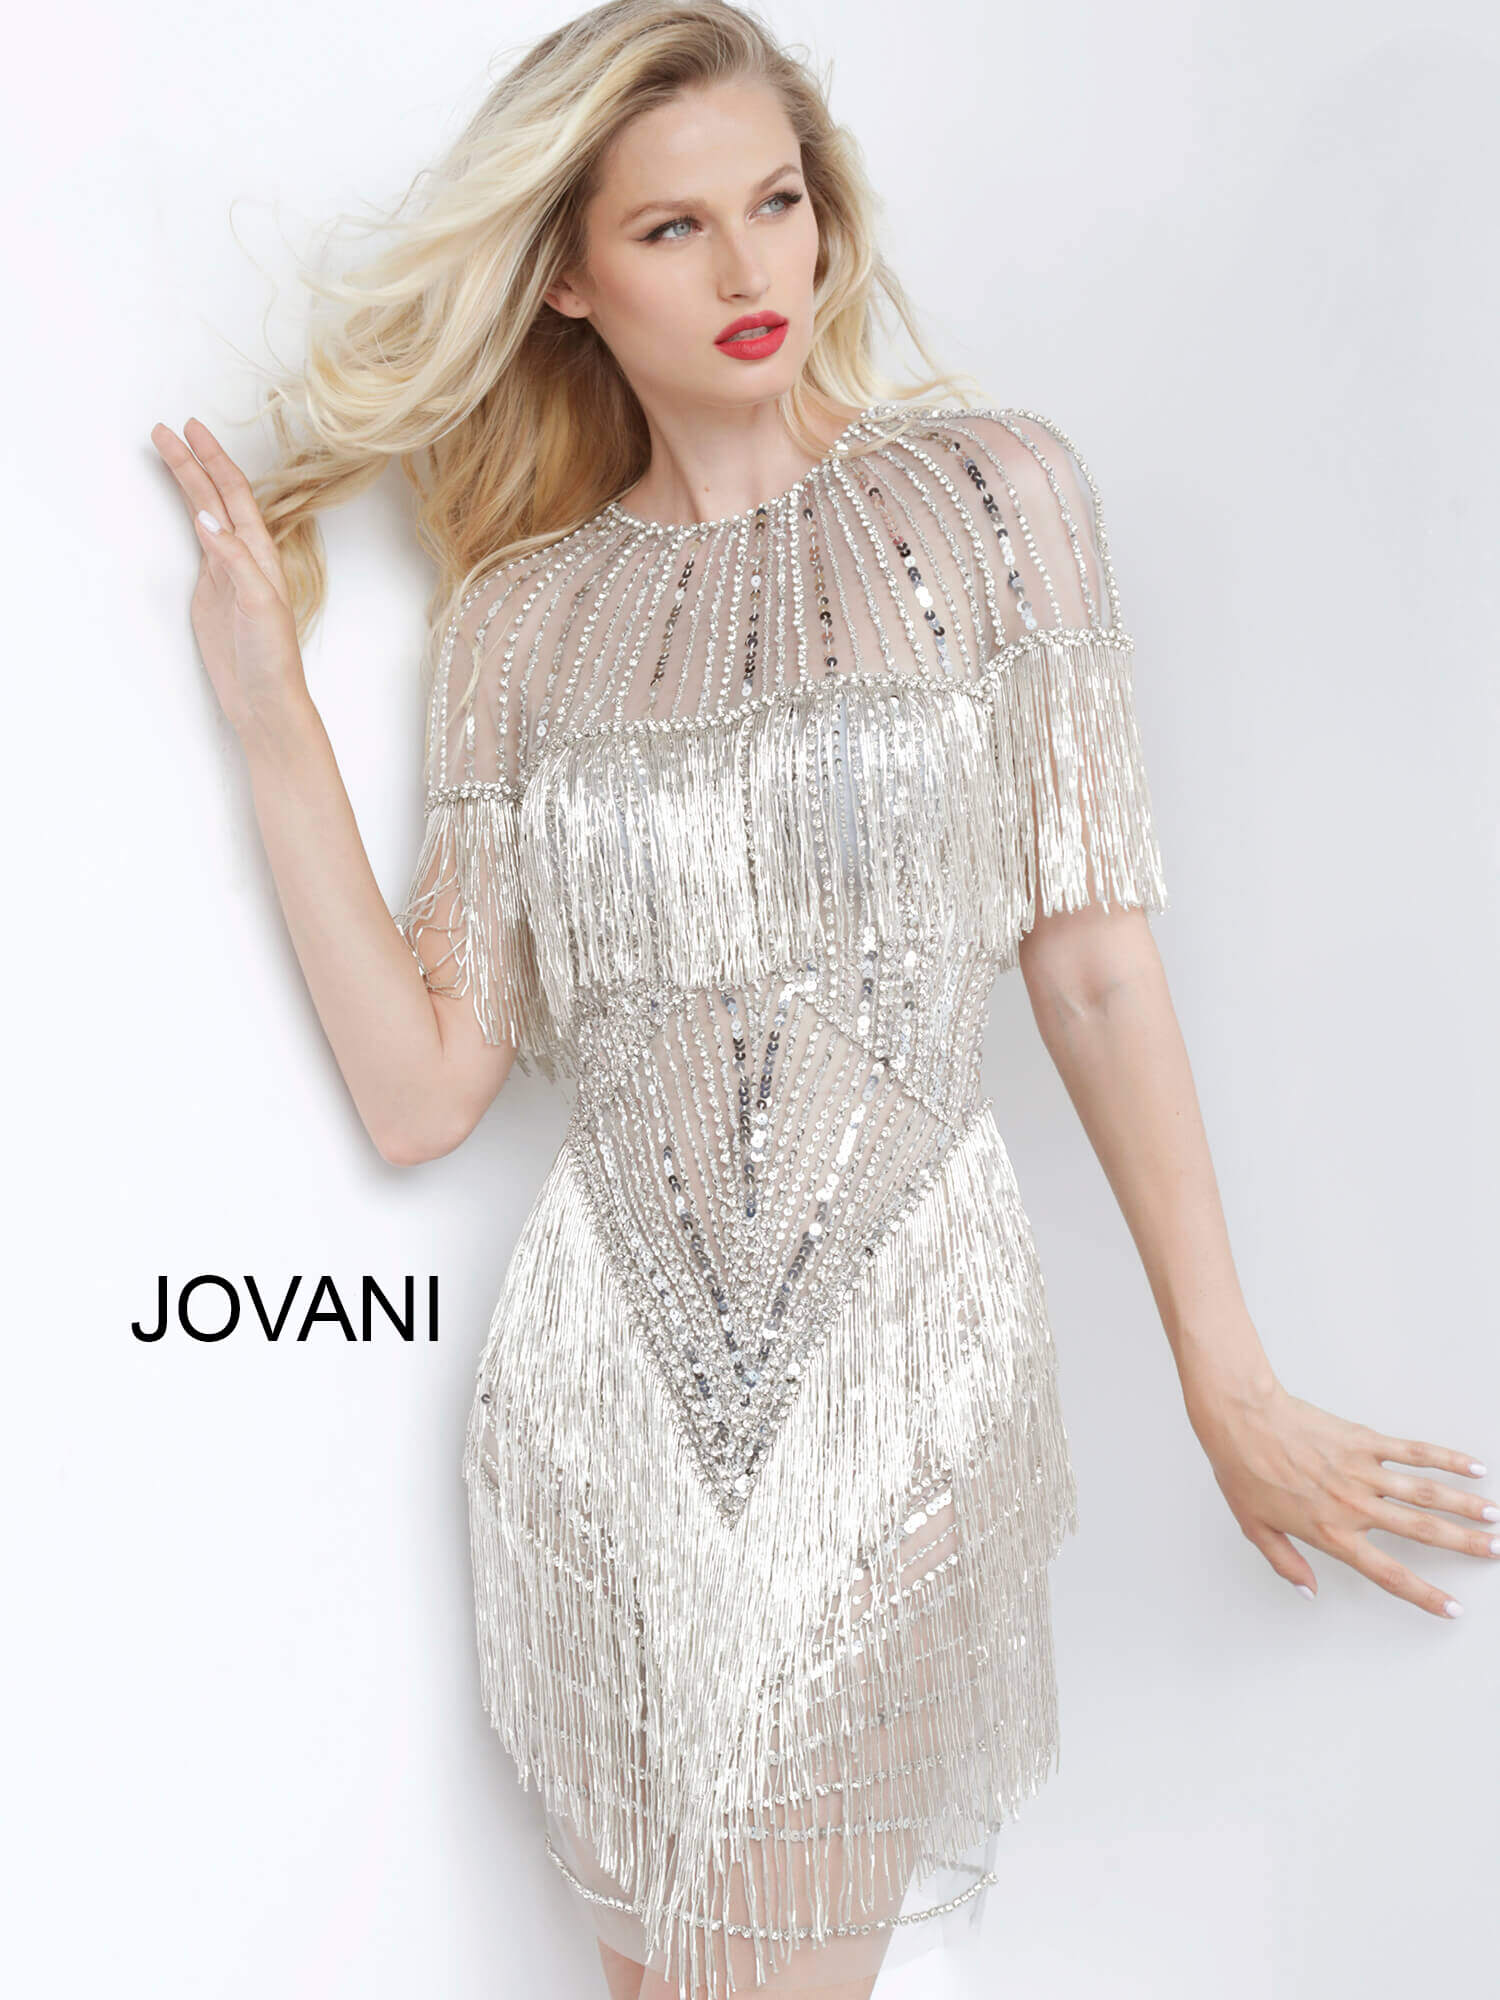 Jovani 11999 Grey Silver Sheer Neckline Embellished Short Dress